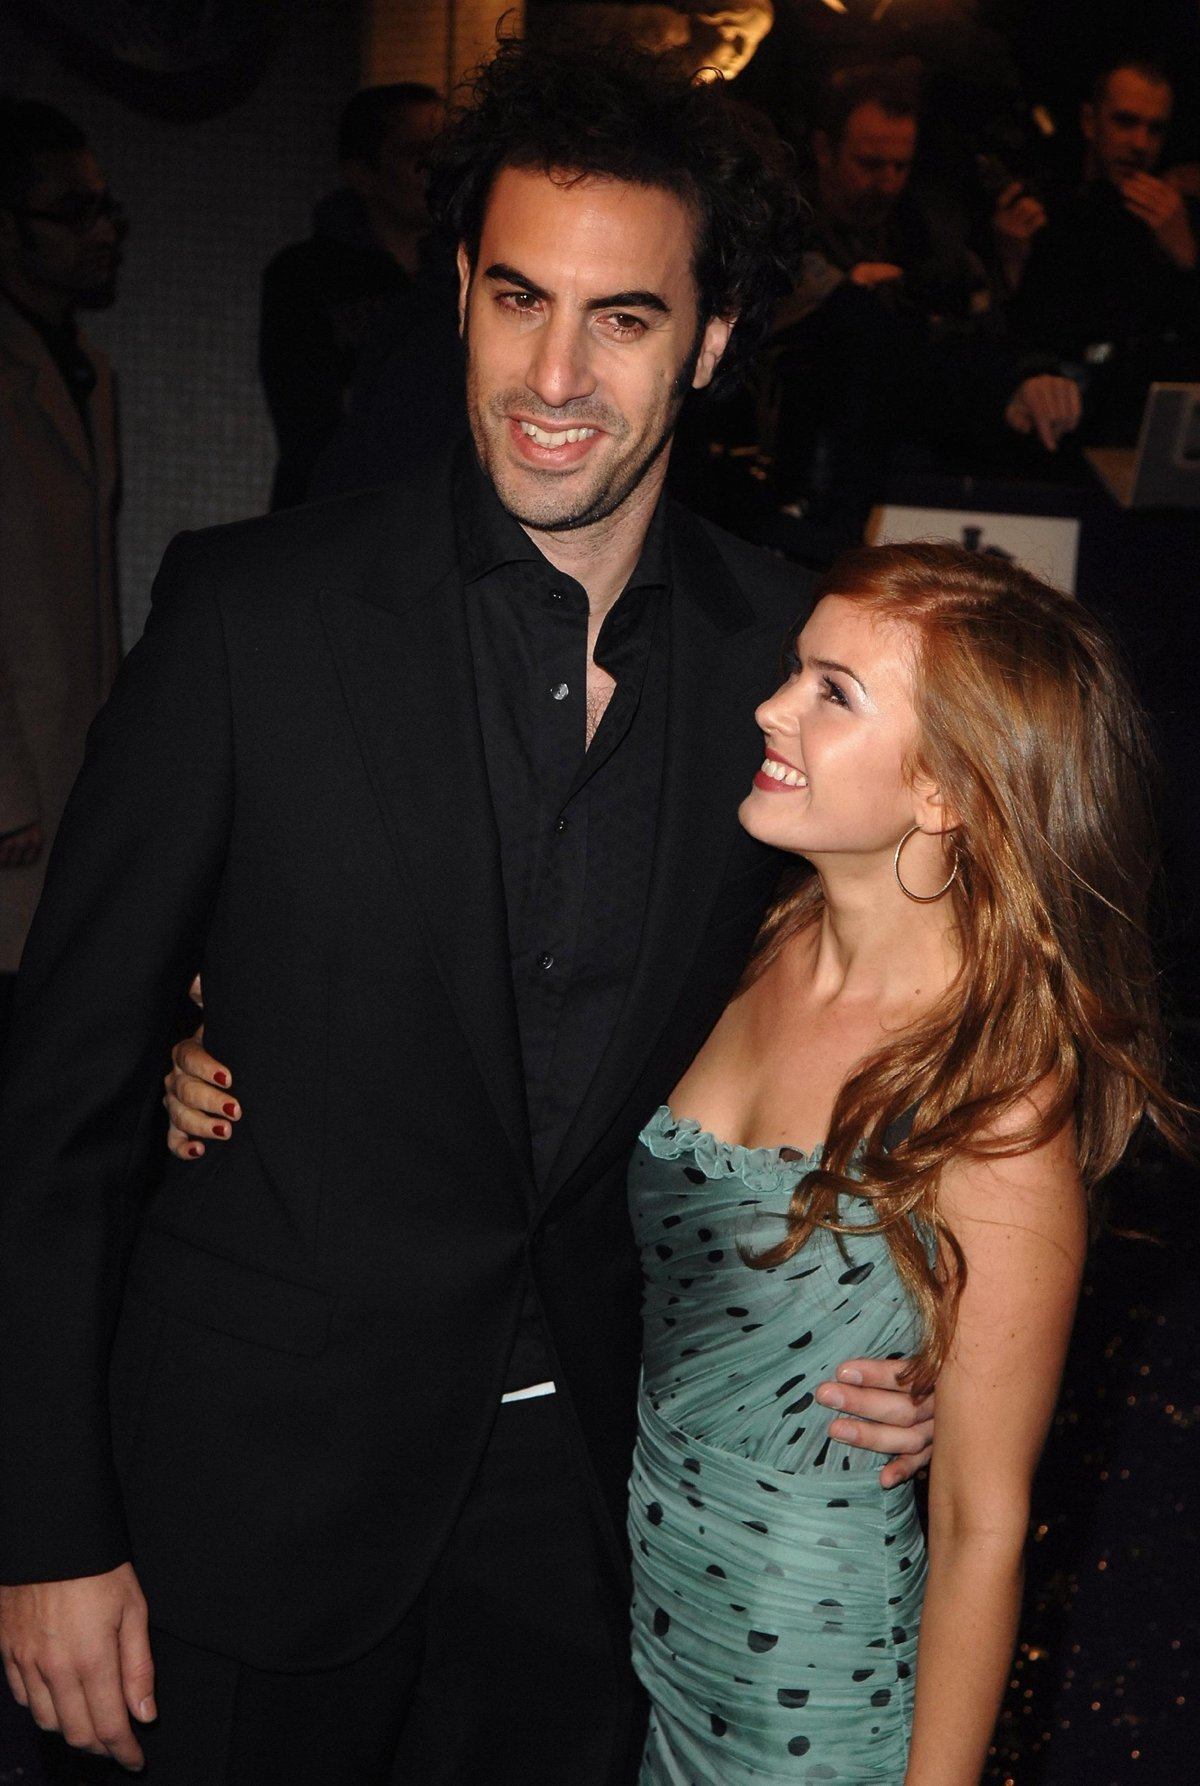 Sacha Baron Cohen knew Isla Fisher was the one after meeting her at a party in Sydney